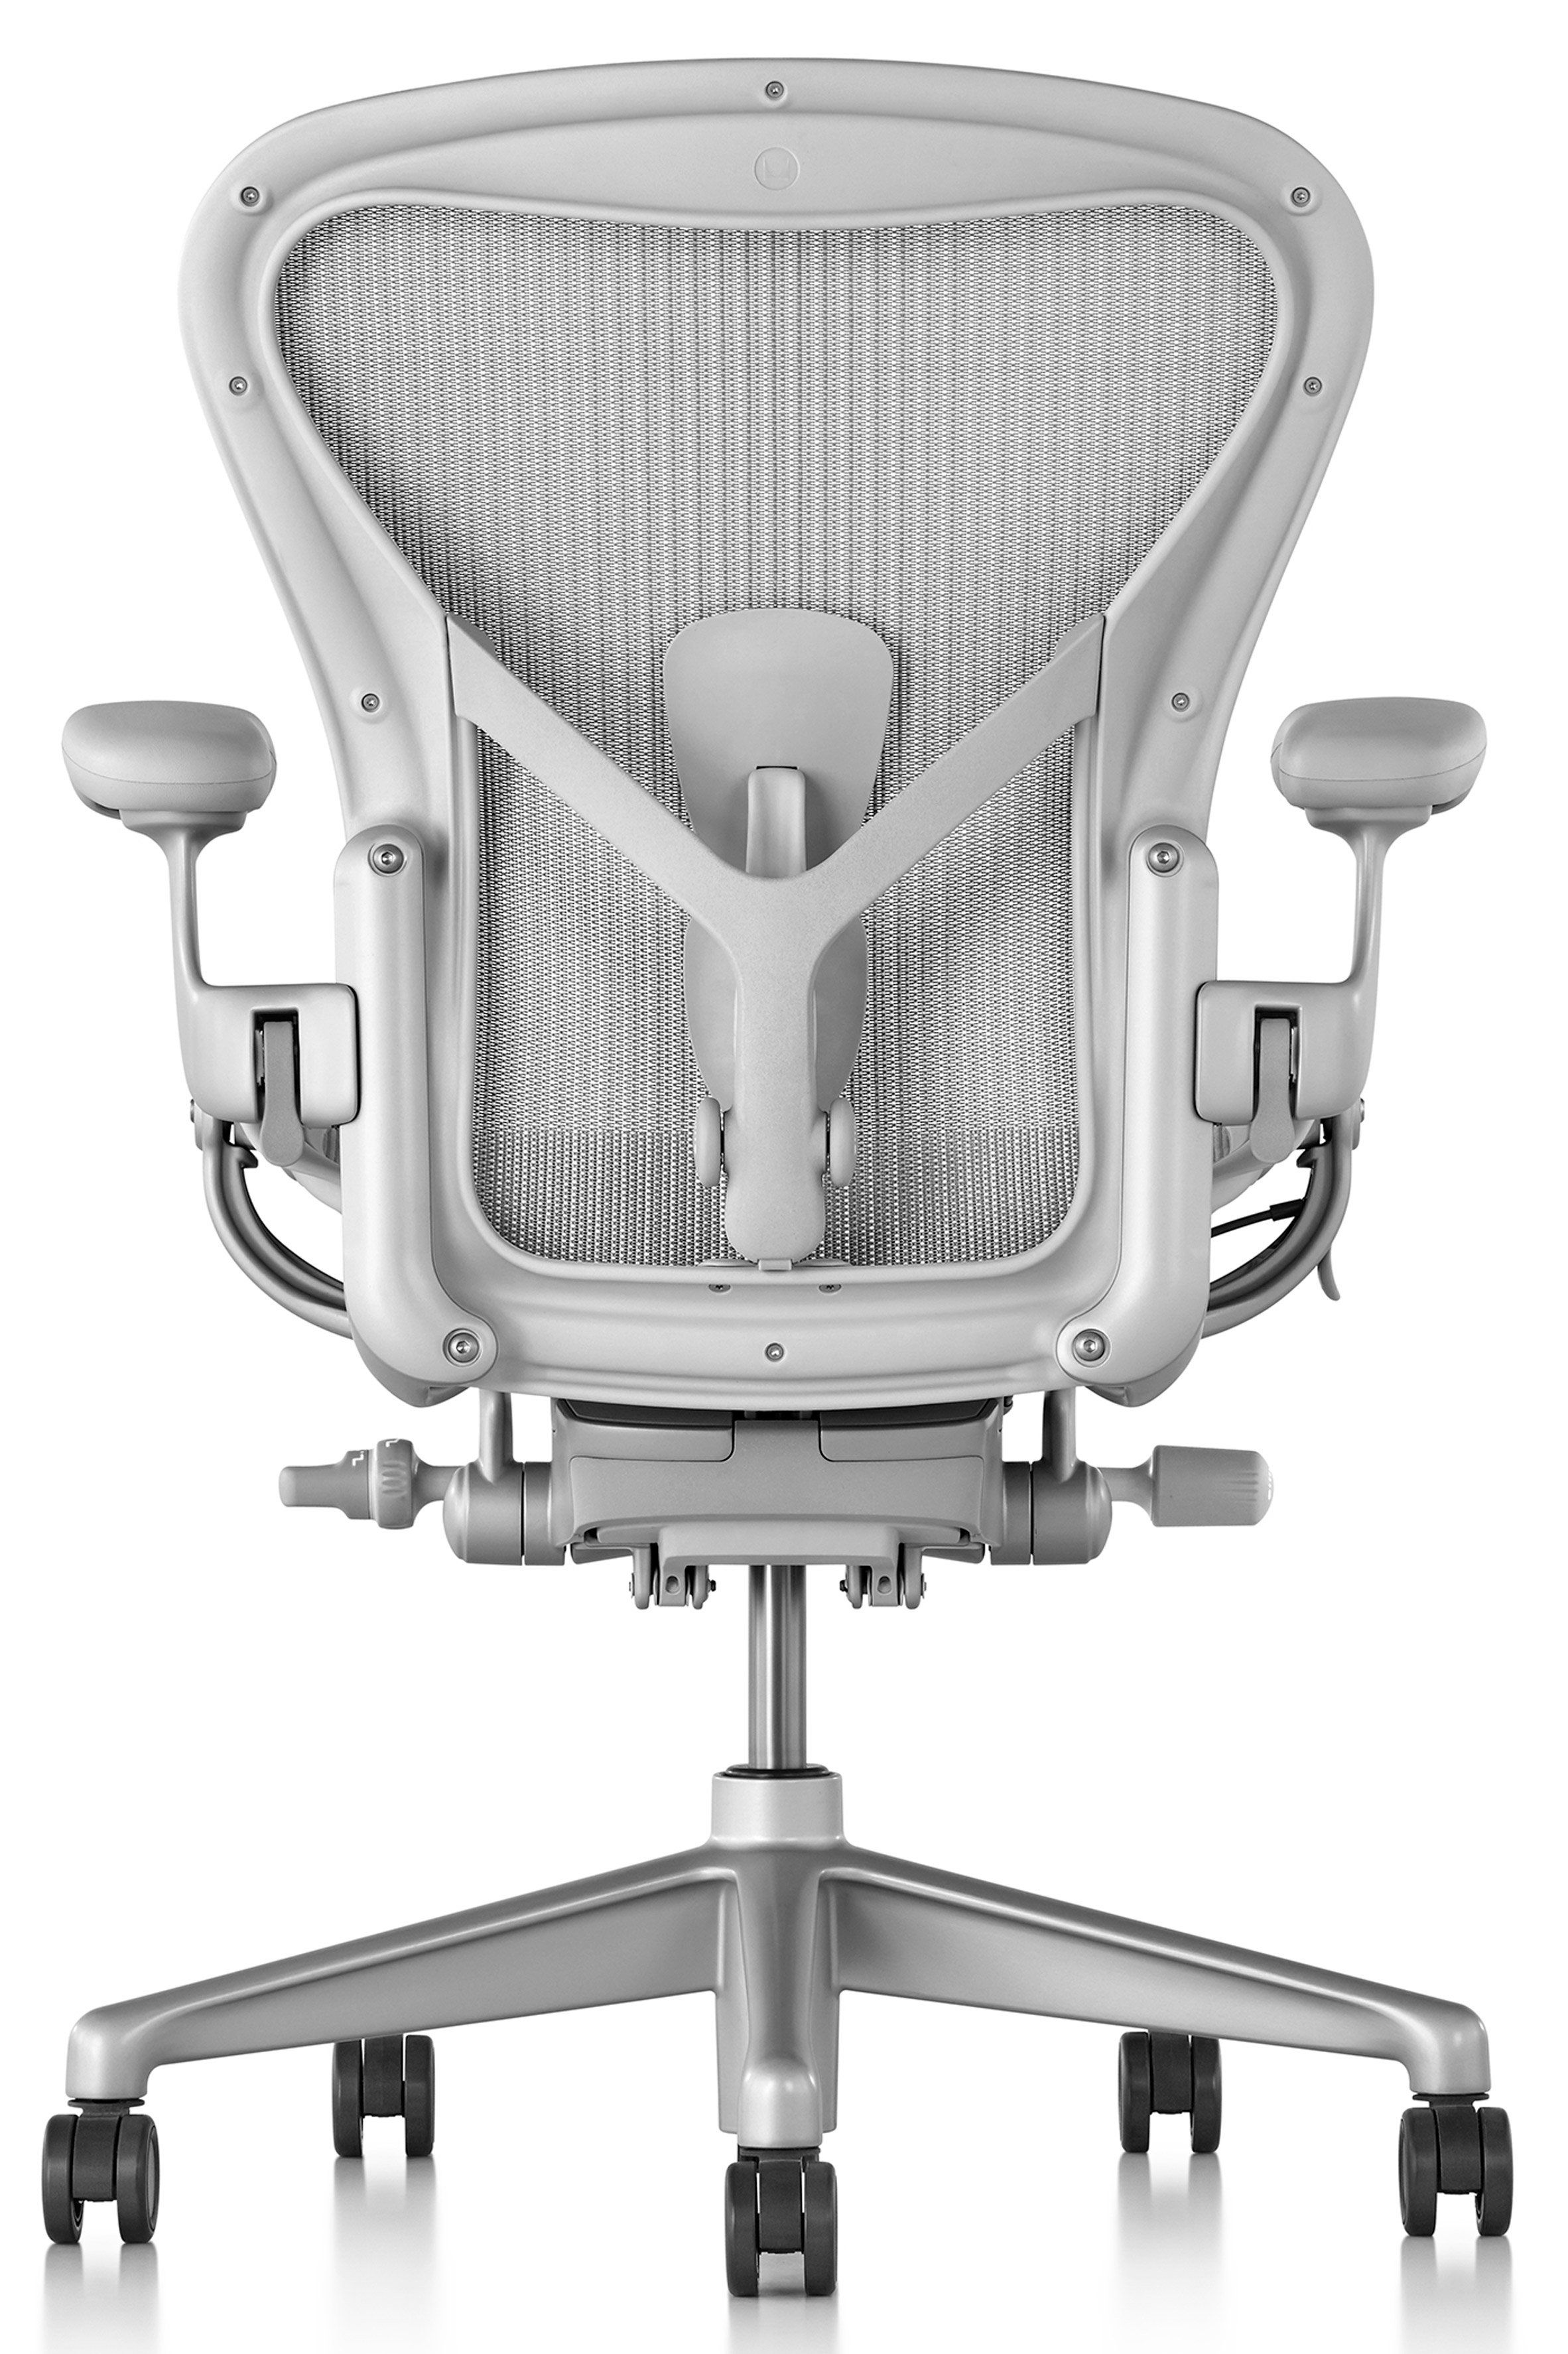 Herman Miller S Aeron Chair Has Been Fine Tuned To Make It More Responsive To Different Body Types Office Chair Aeron Office Chair Office Chair Design